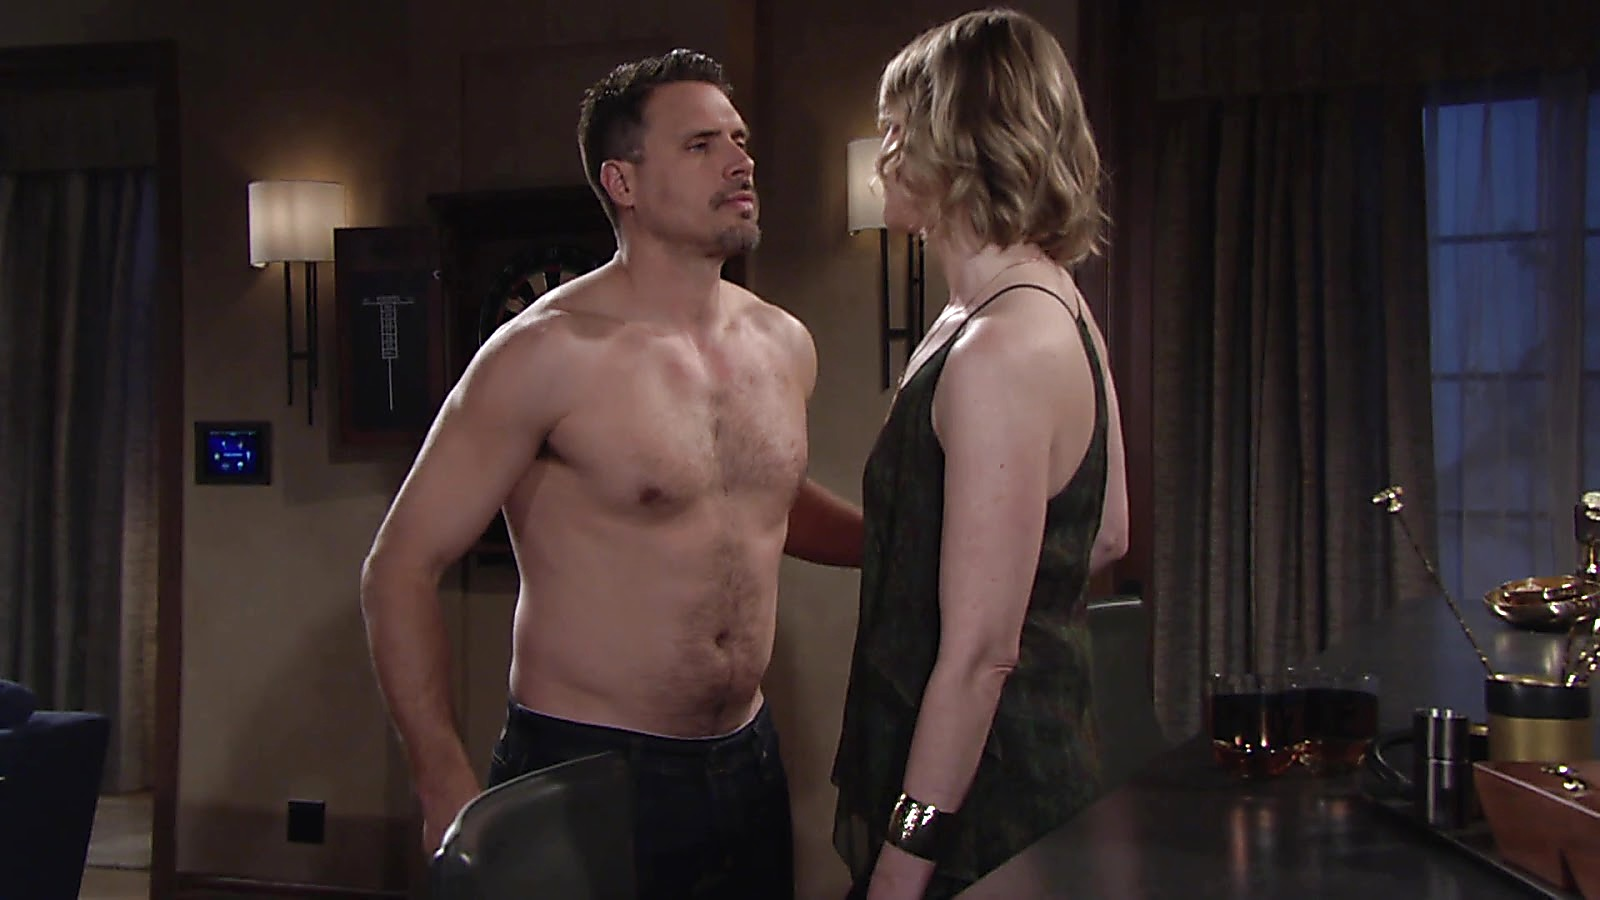 Joshua Morrow sexy shirtless scene April 11, 2019, 10am